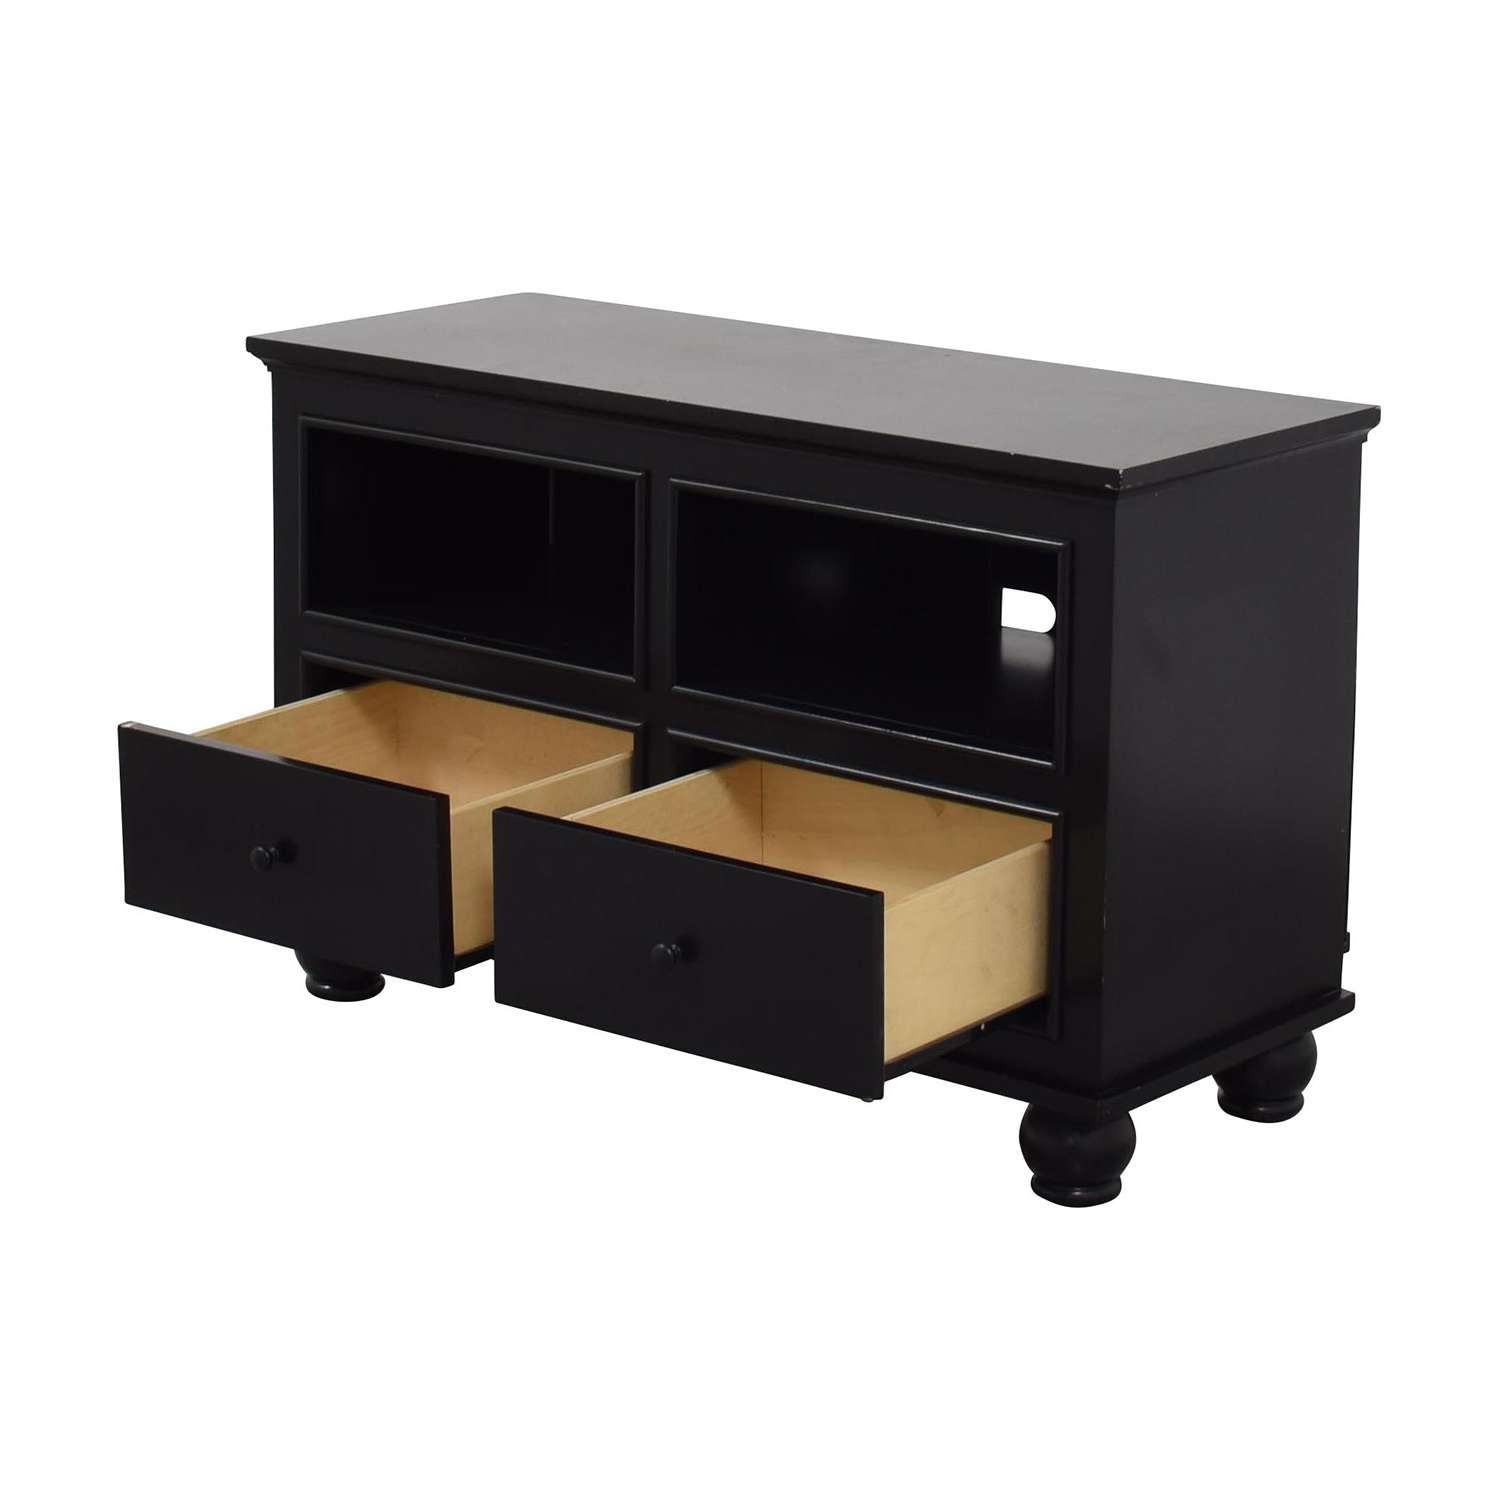 86% Off – Macy's Macy's Dark Wood Two Drawer Tv Stand / Storage Throughout Dark Wood Tv Cabinets (Gallery 12 of 20)